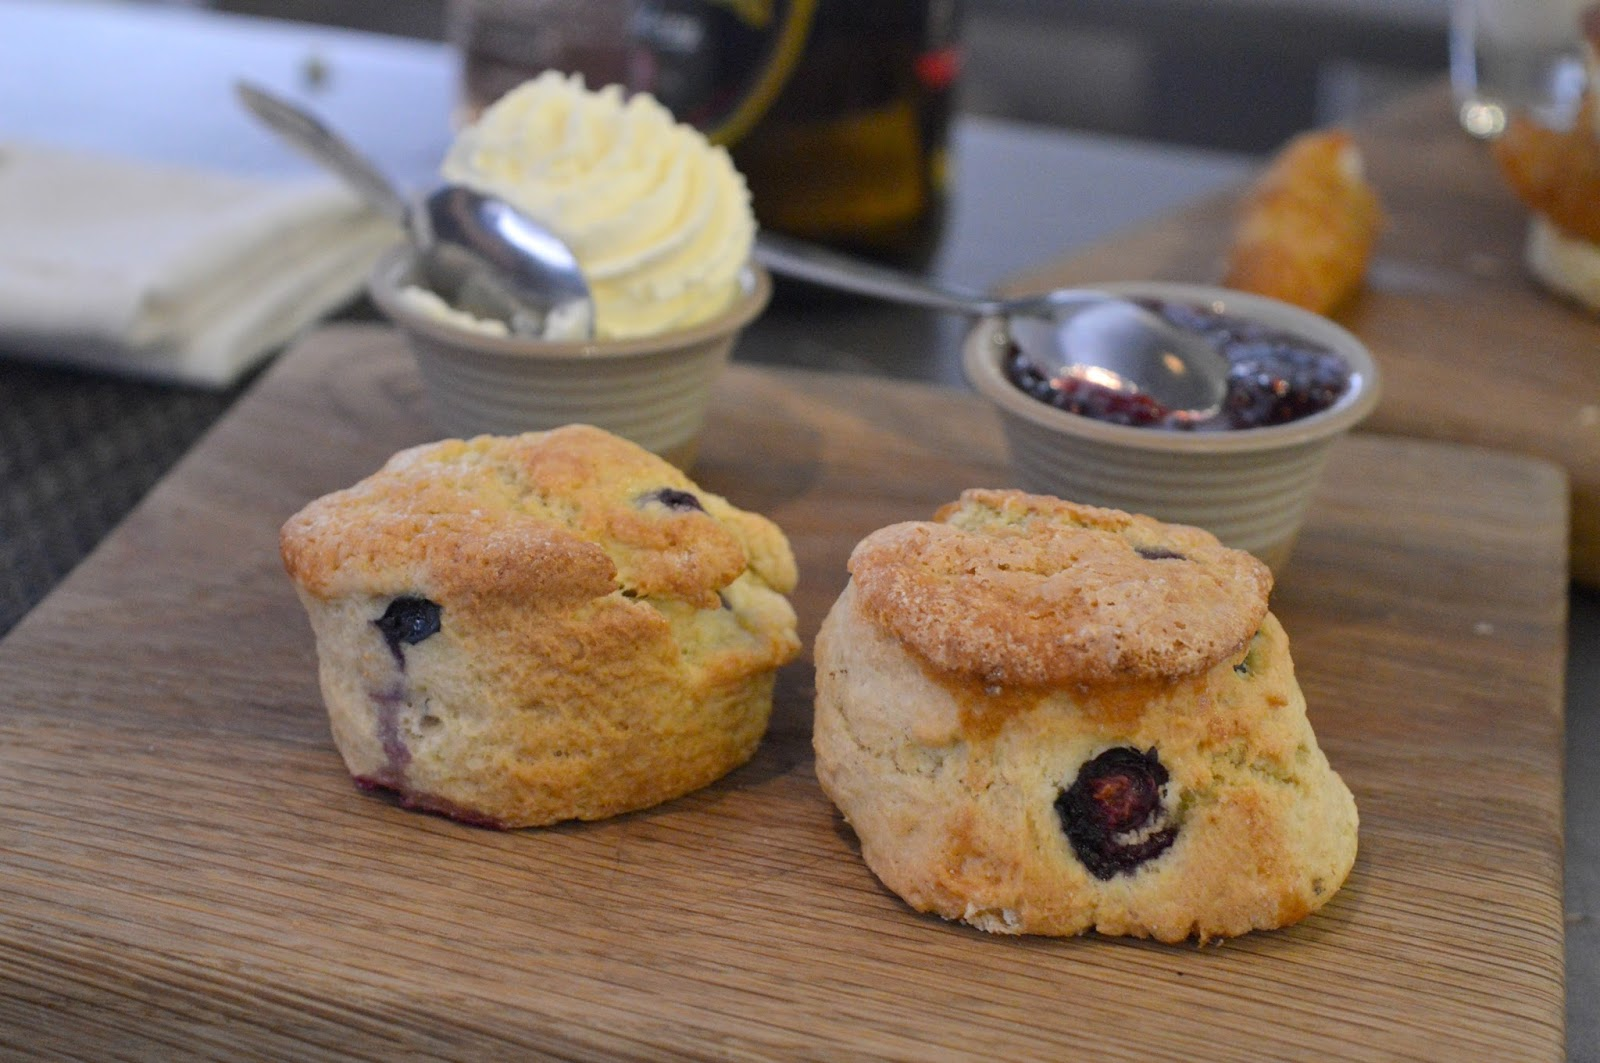 10 Reasons Why I LOVE Afternoon Tea - Scones